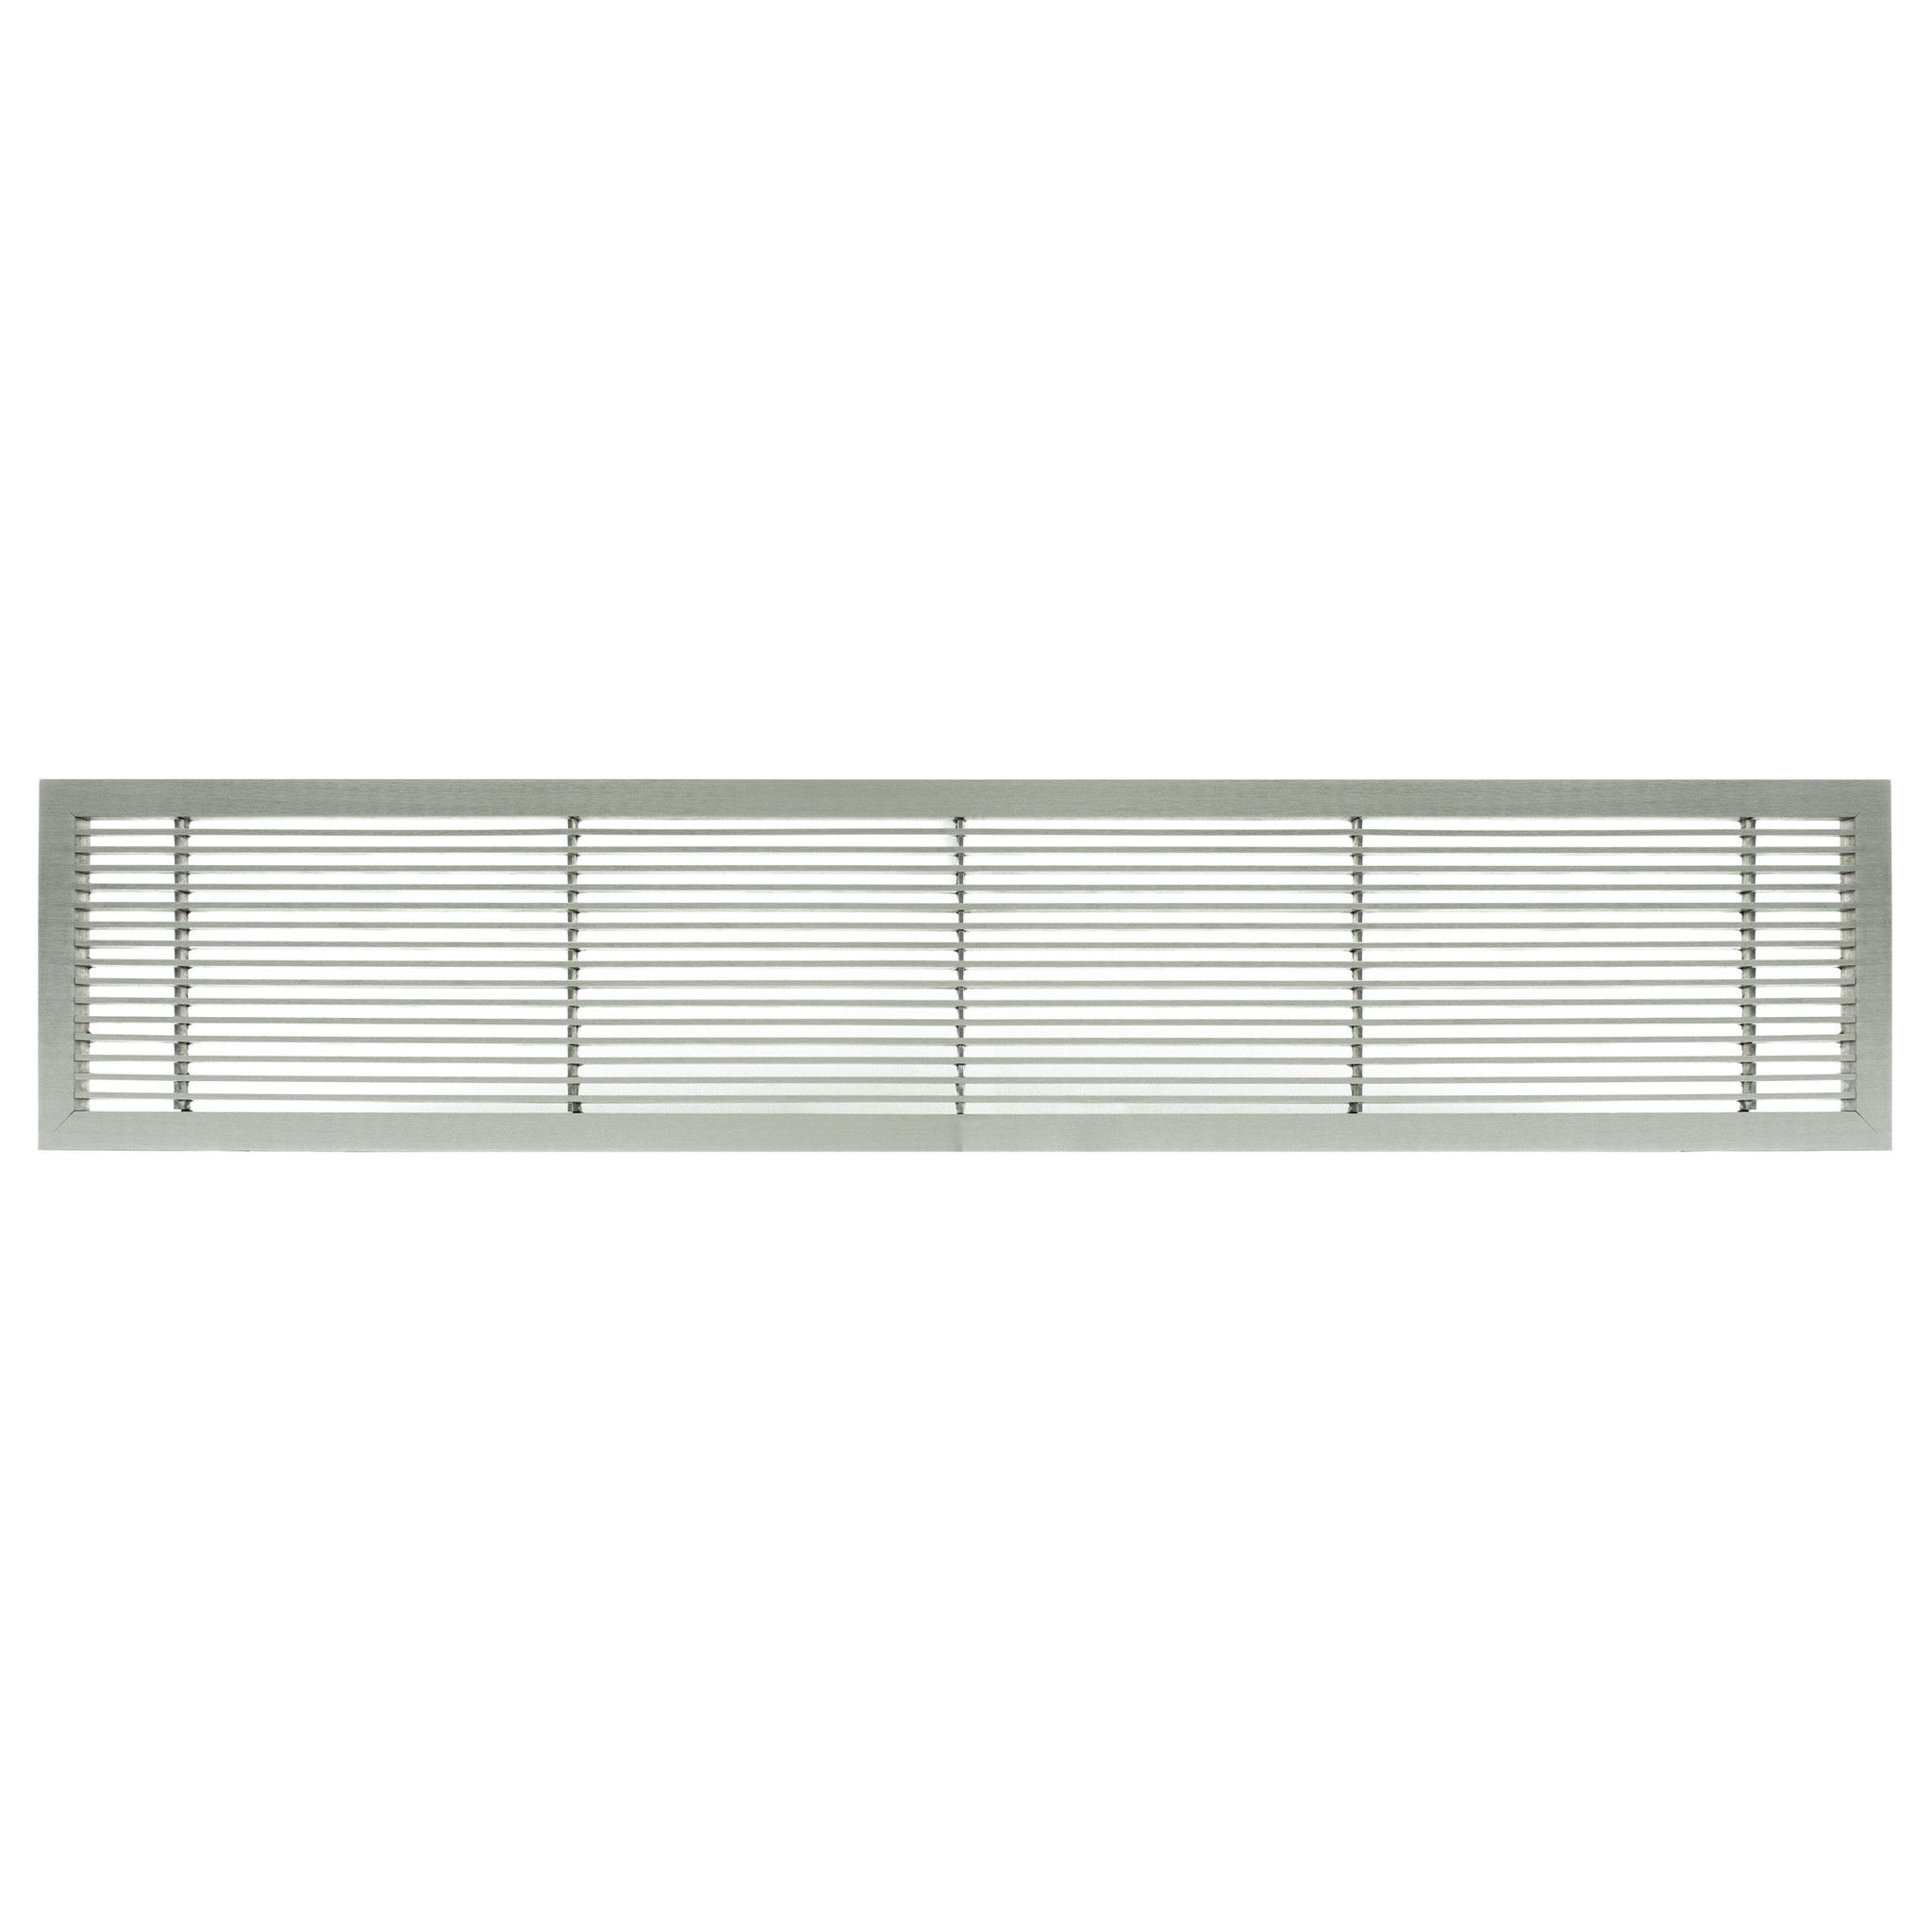 AG10 B Frame Bar Grille Return air vent, Air vent